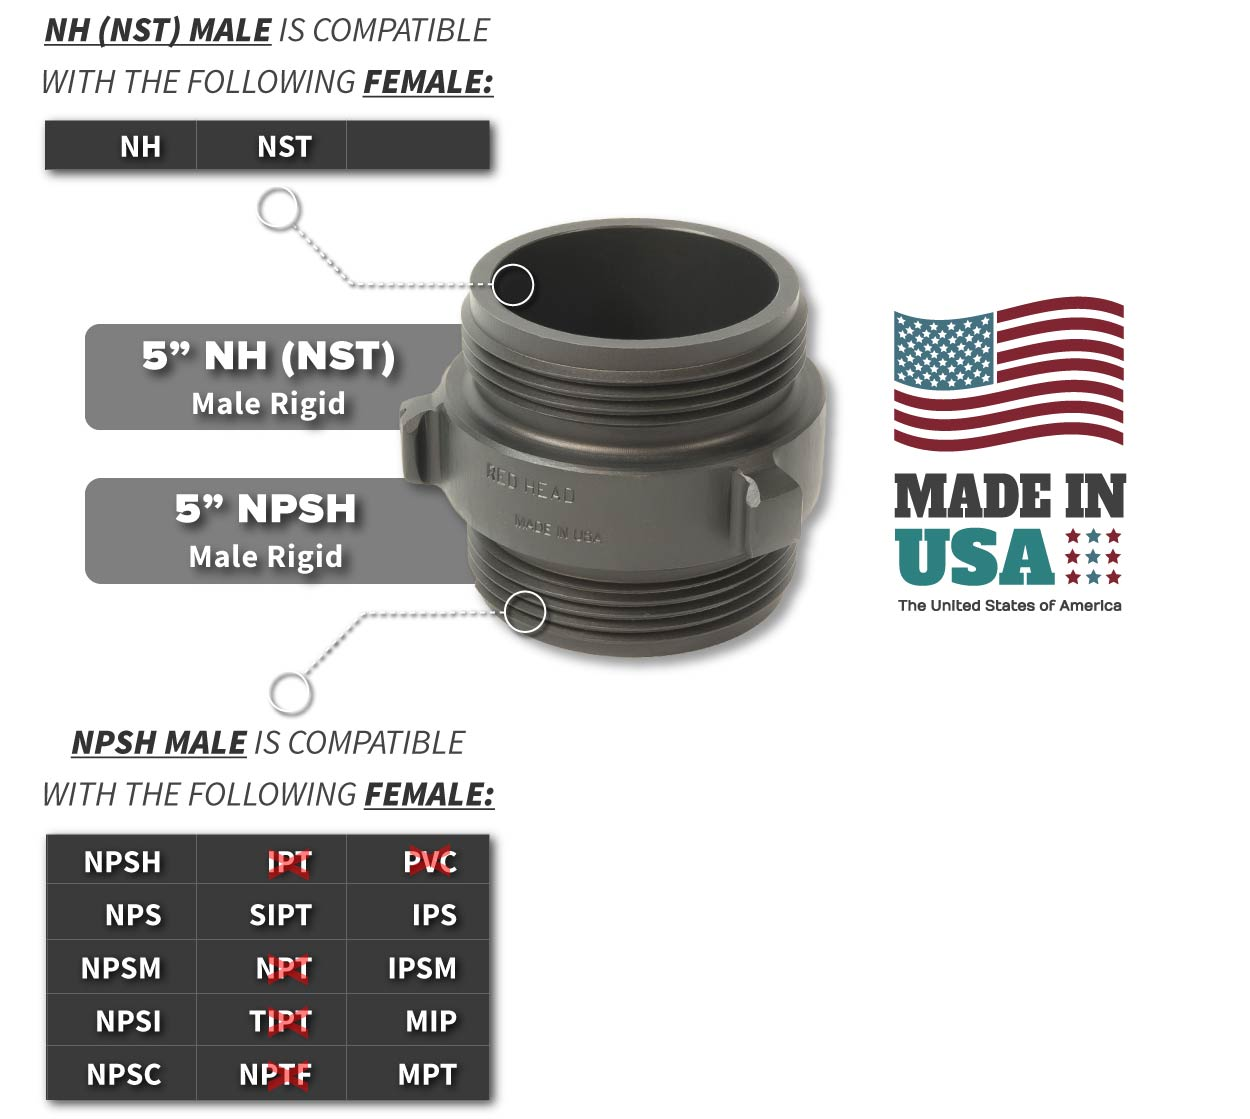 5 Inch NH-NST Male x 5 Inch NPSH Male Compatibility Thread Chart